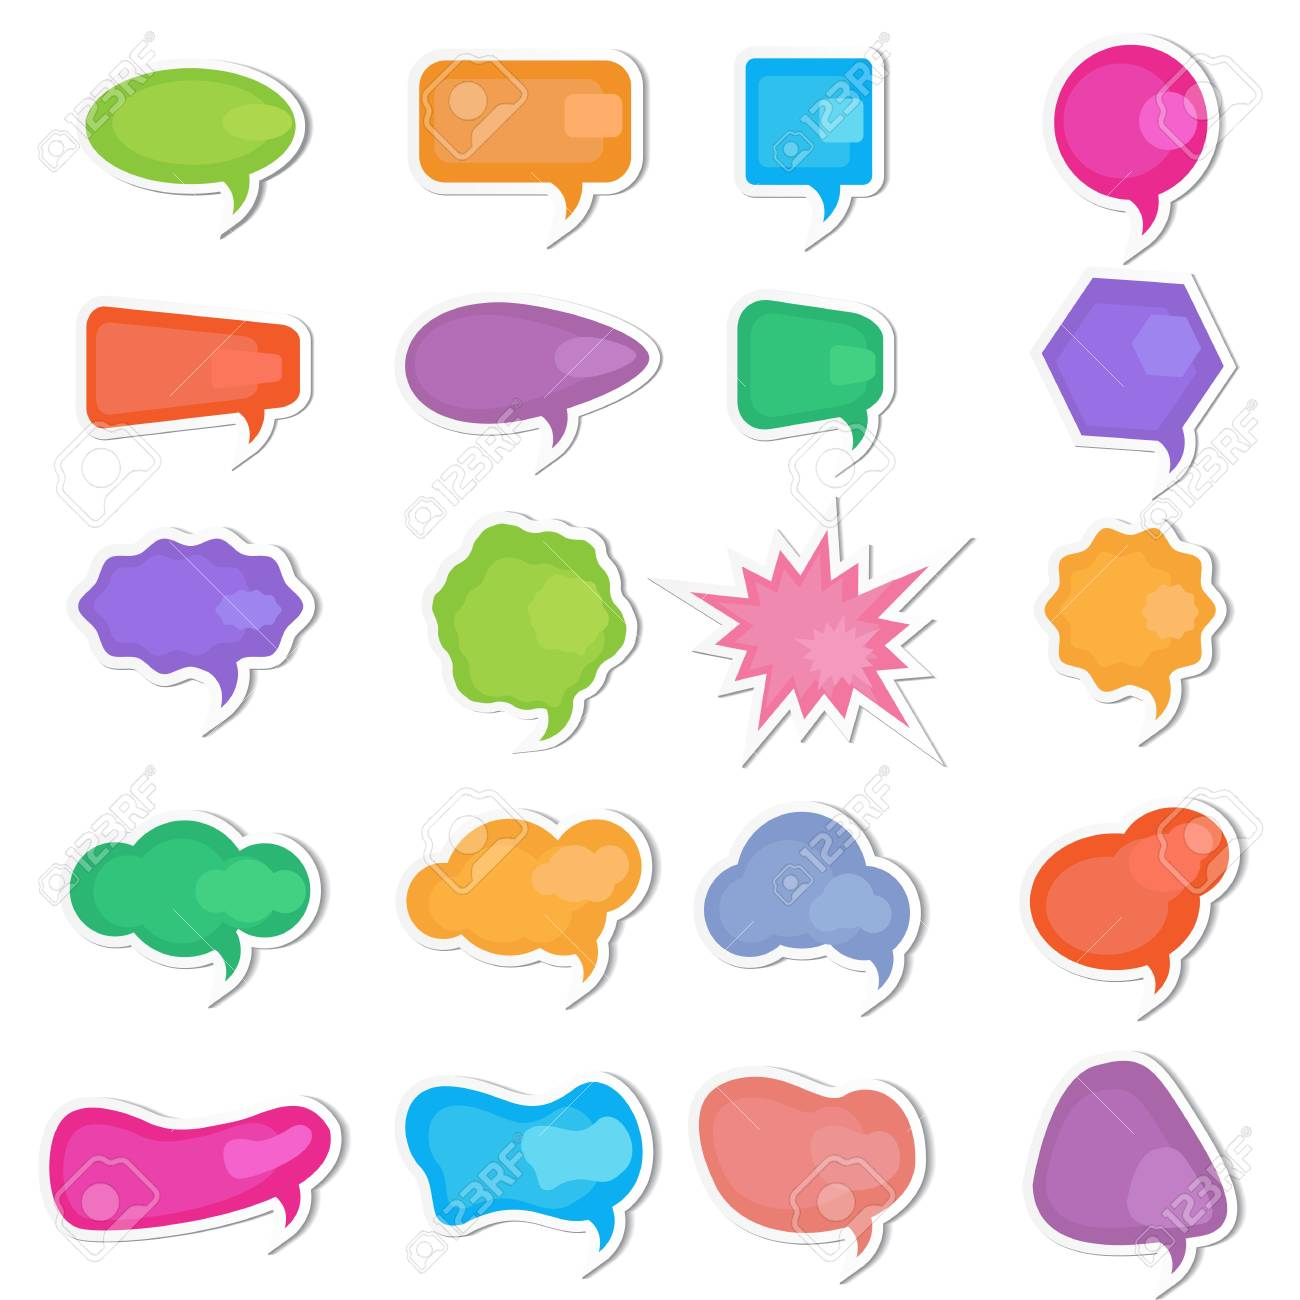 Chat Bubble Stock Vector - 13246337